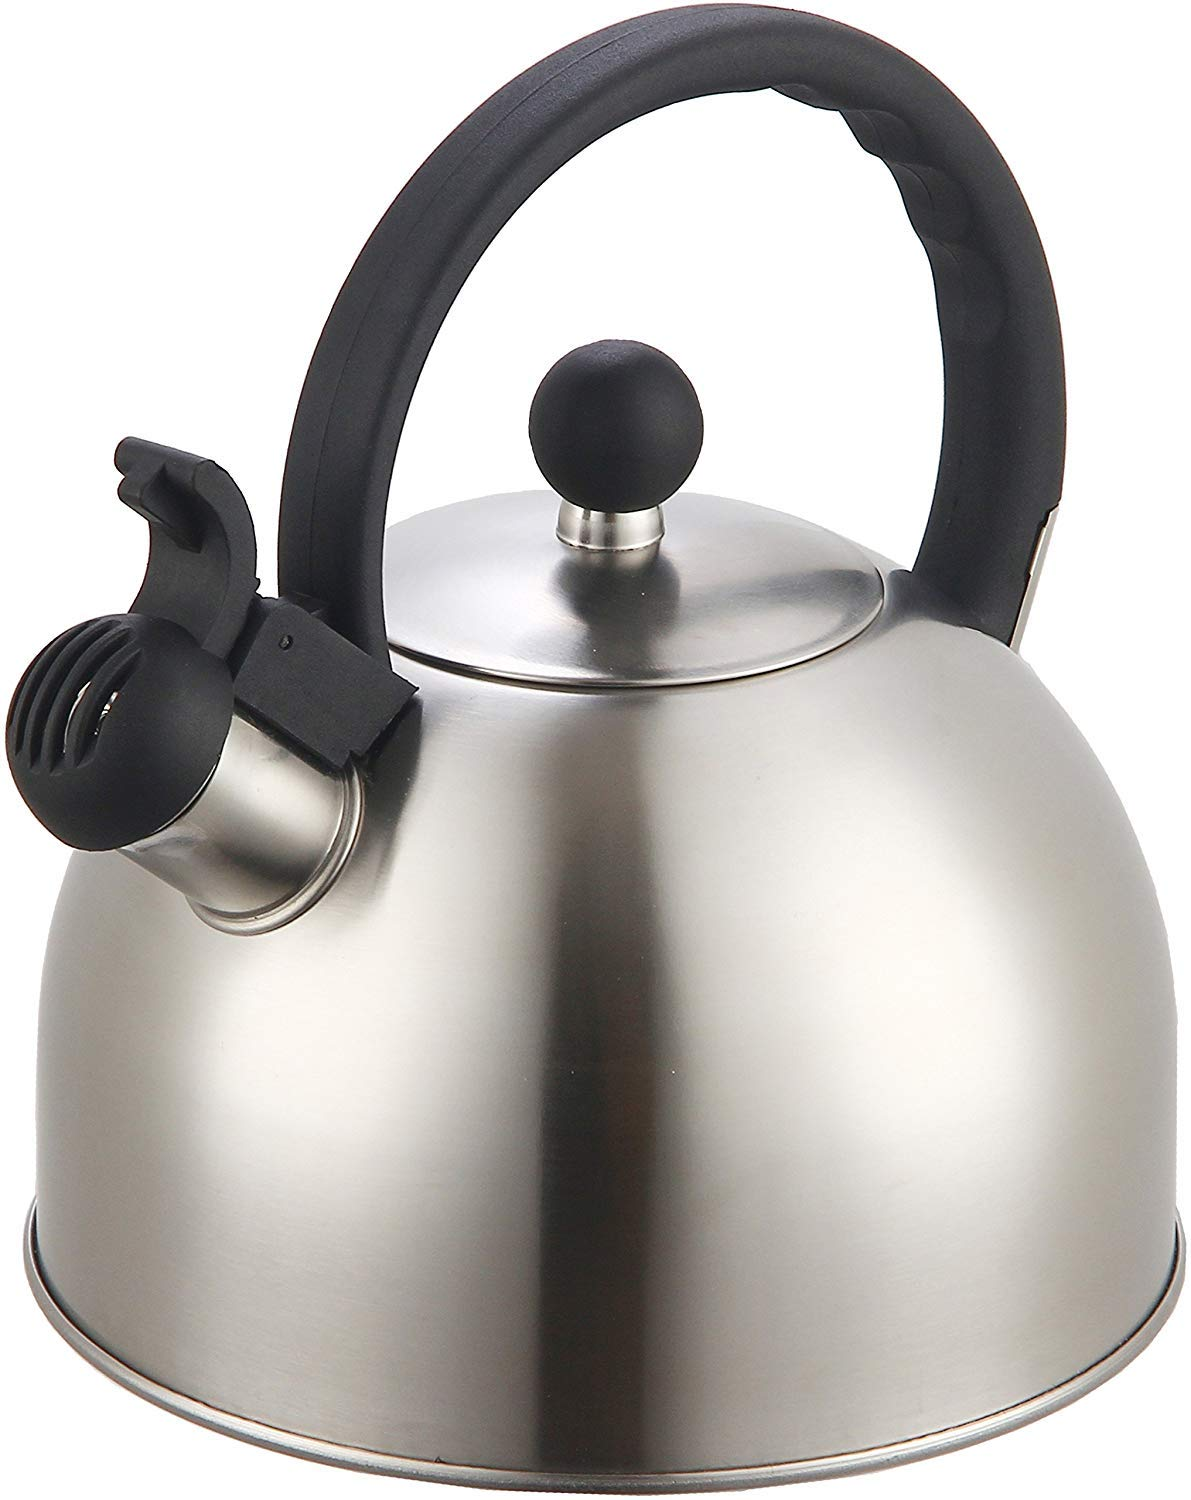 2 Liter Stainless Steel Whistling Tea Kettle – Modern Stainless Steel Whistling Tea Pot for Stovetop with Cool Grip Ergonomic Handle Red